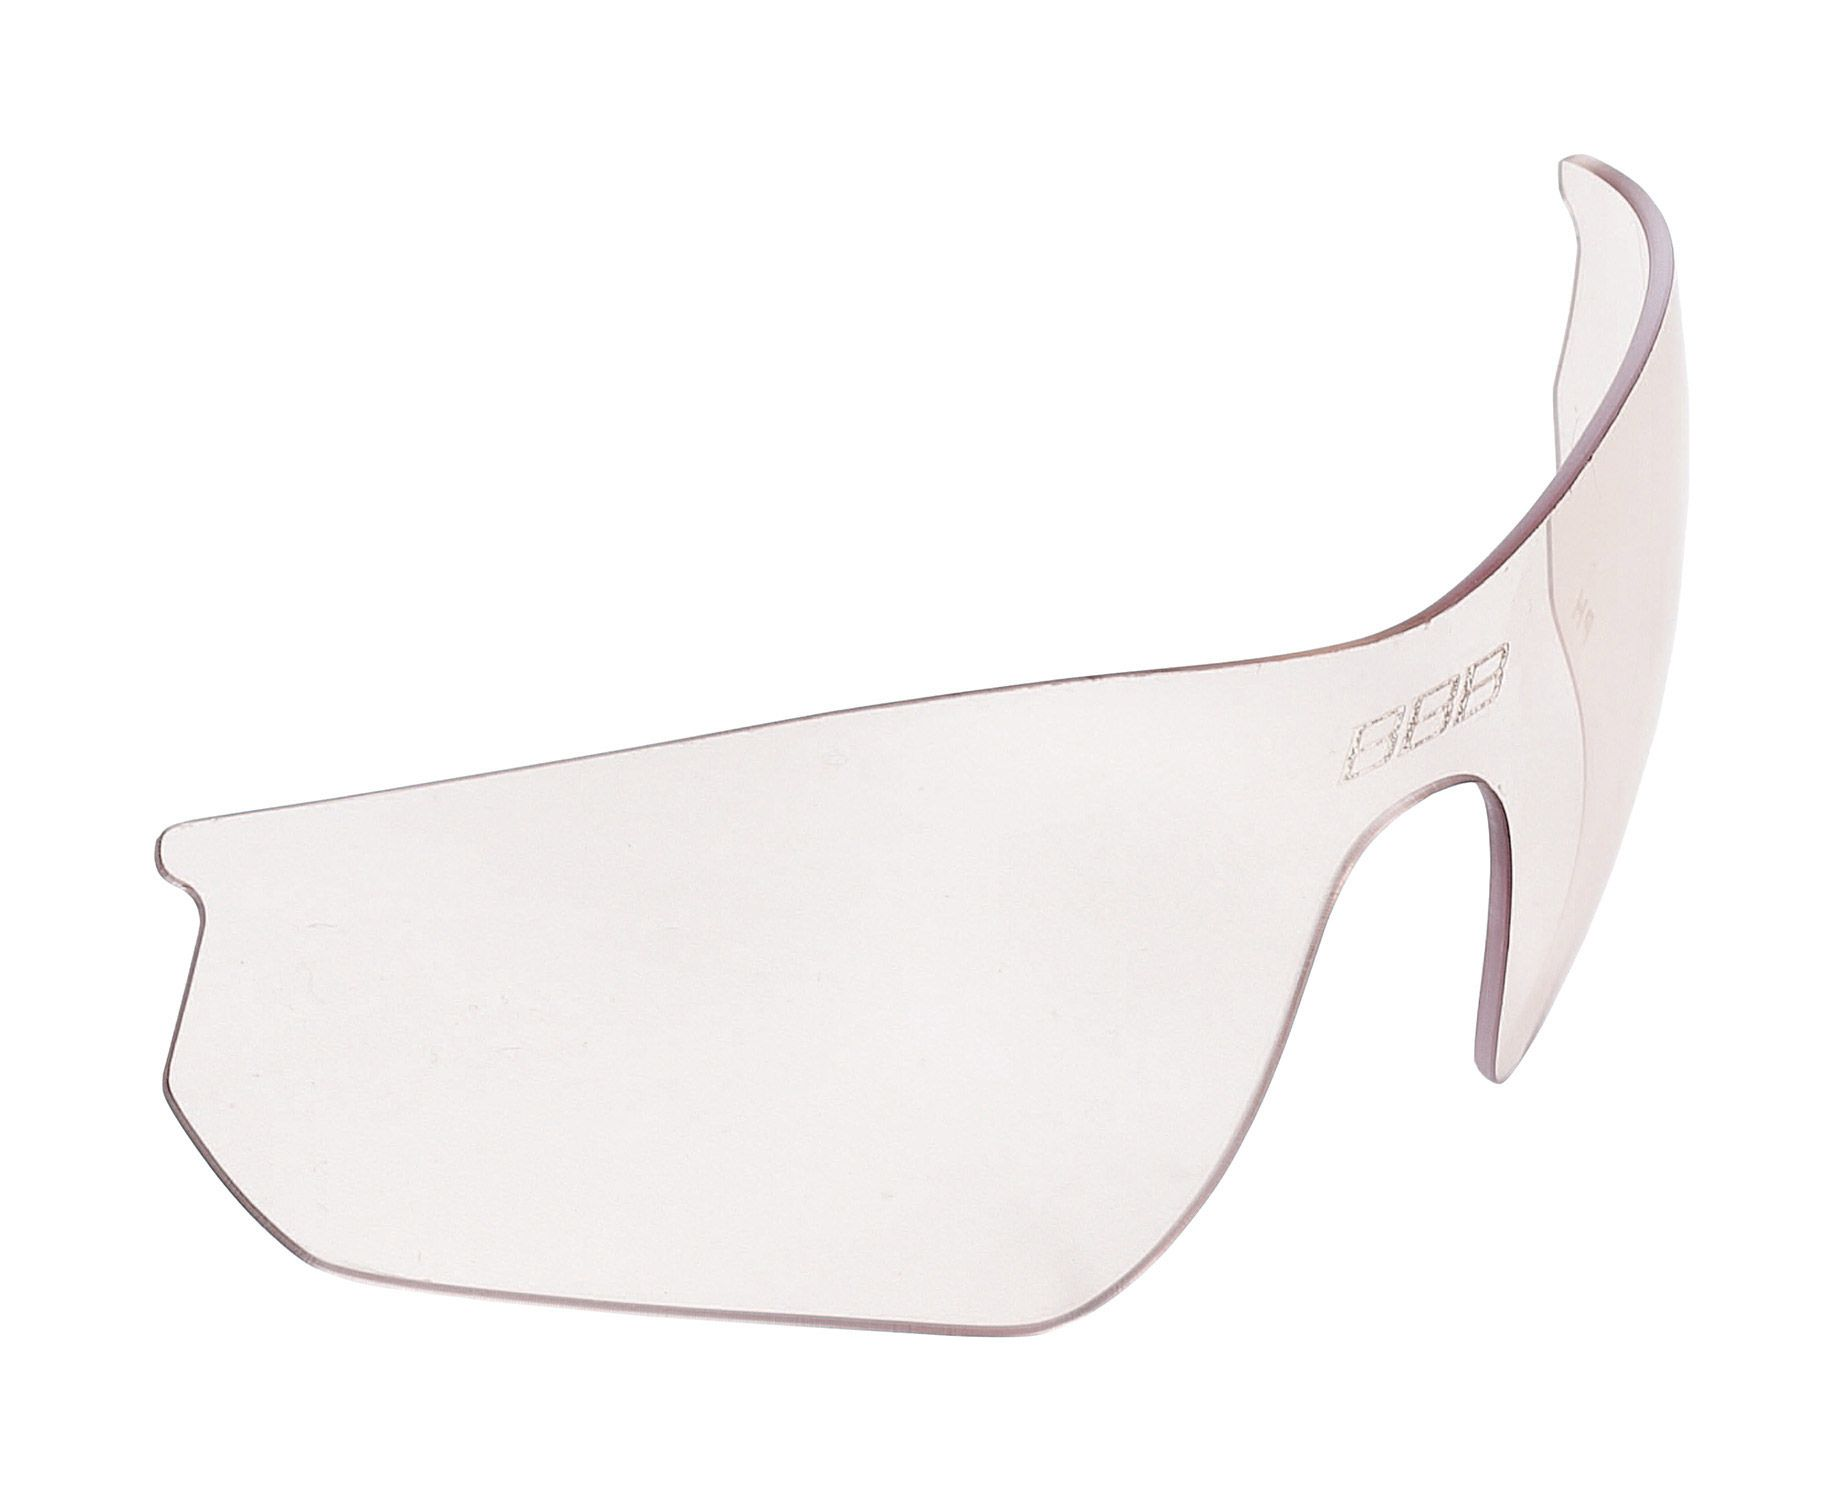 BBB BSG-43 - SELECT LENS (PHOTOCHROMIC) 2973284359